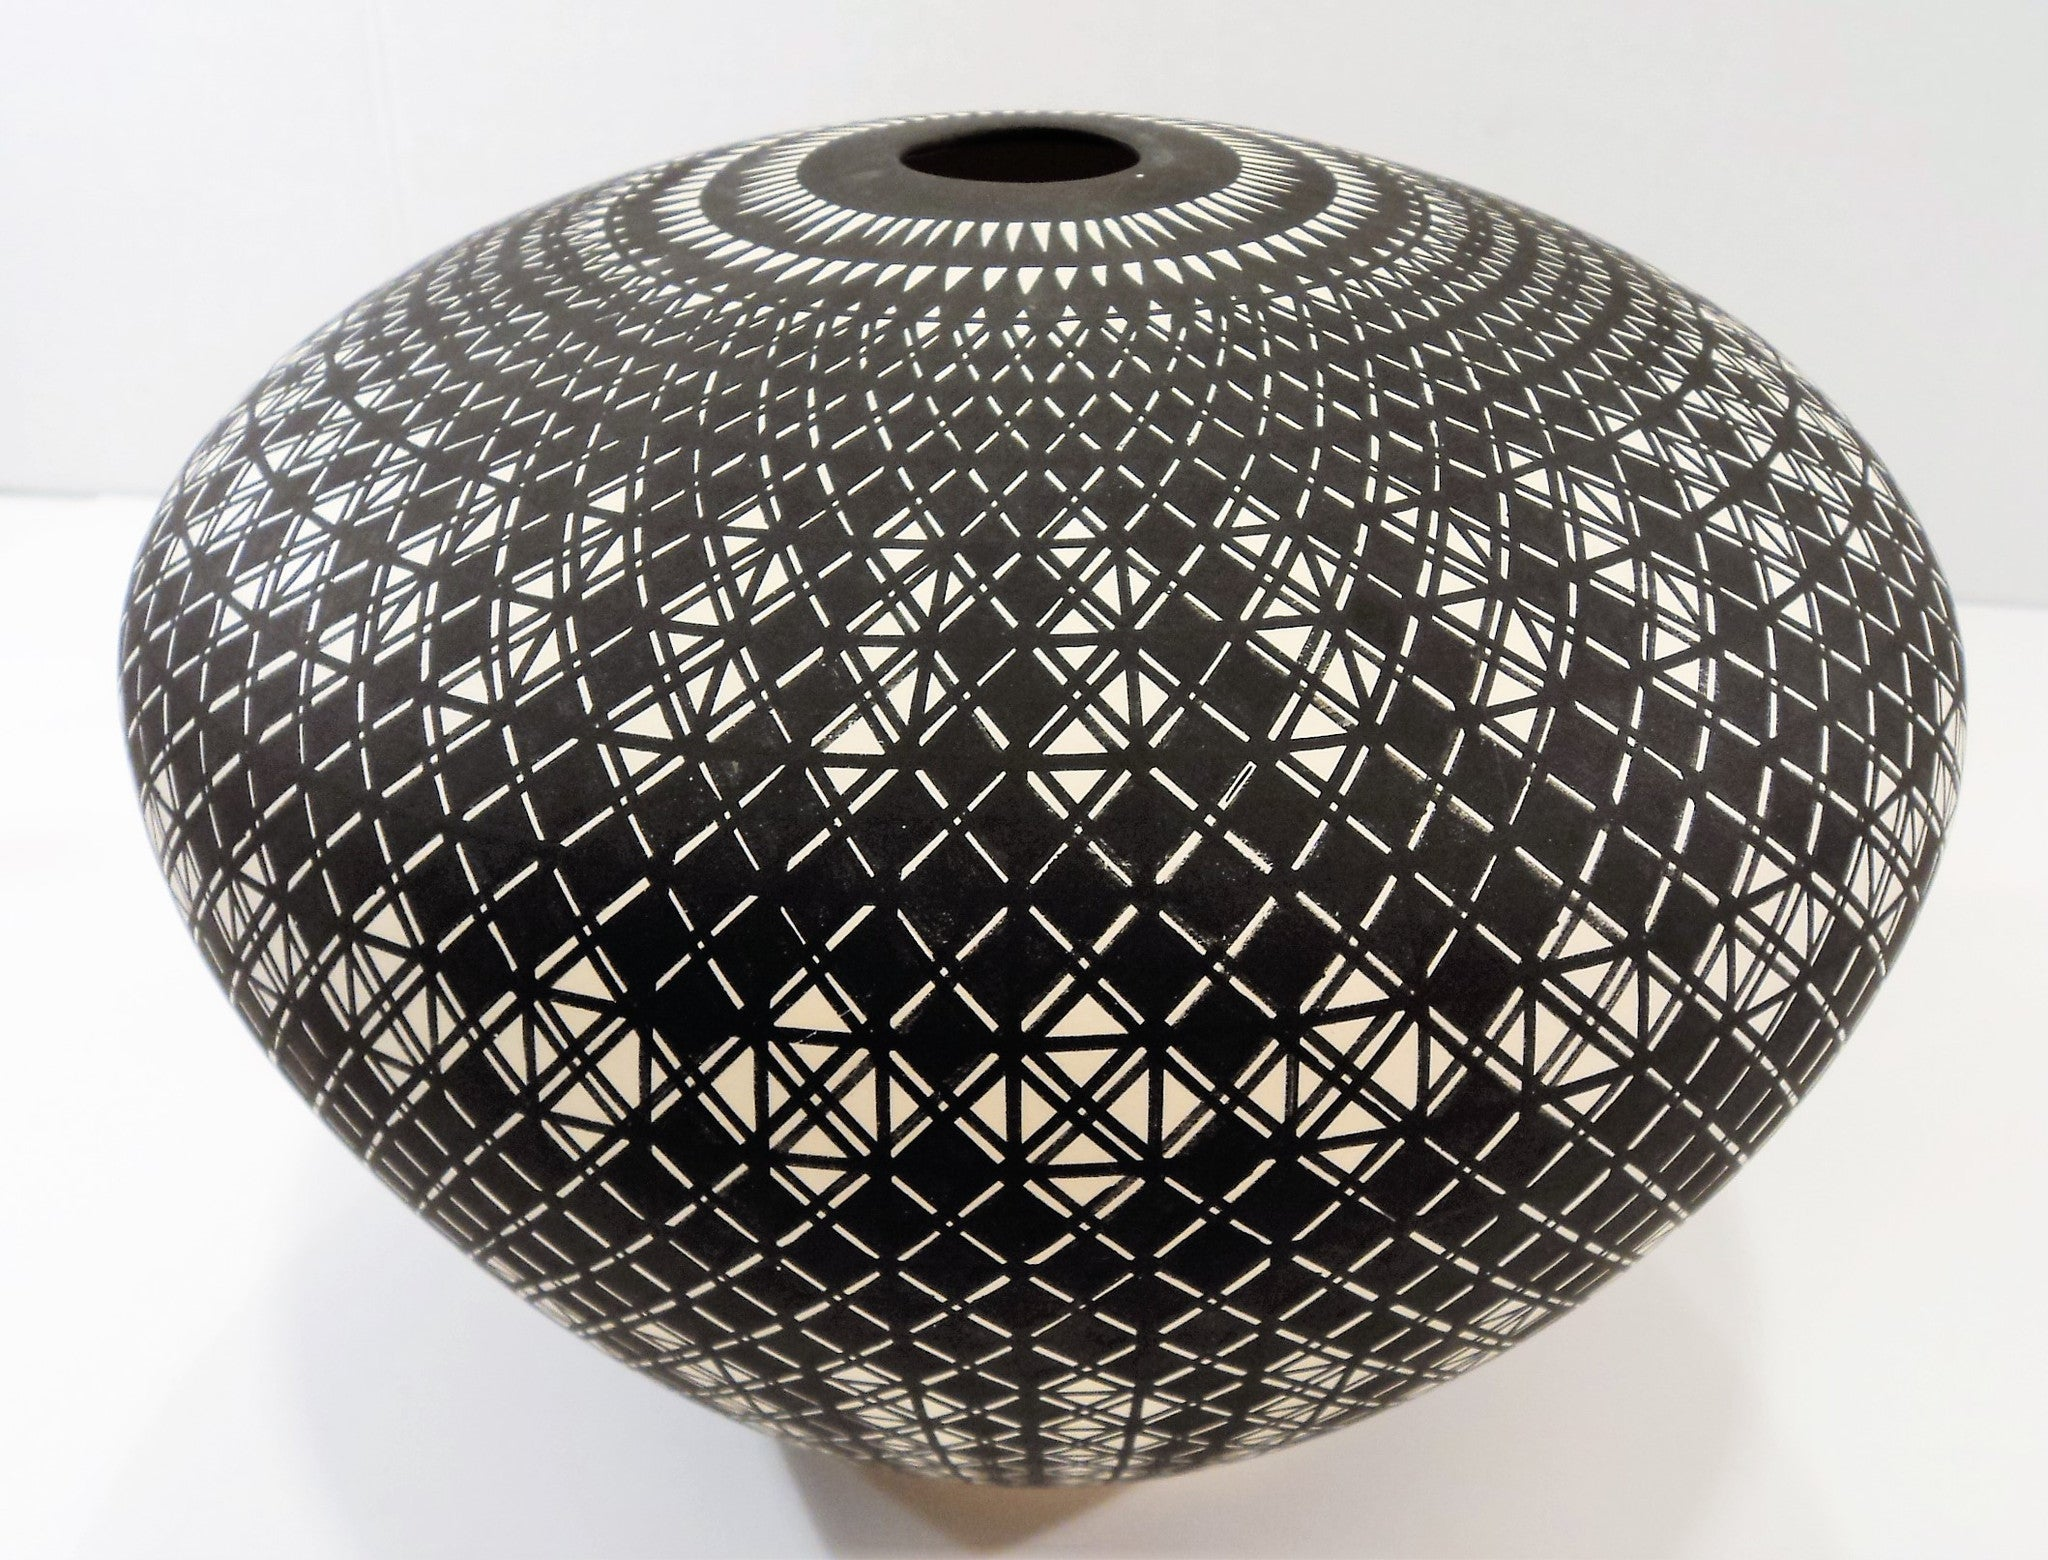 Signed Ceramic Acoma Seed Pot by Greg Victorino